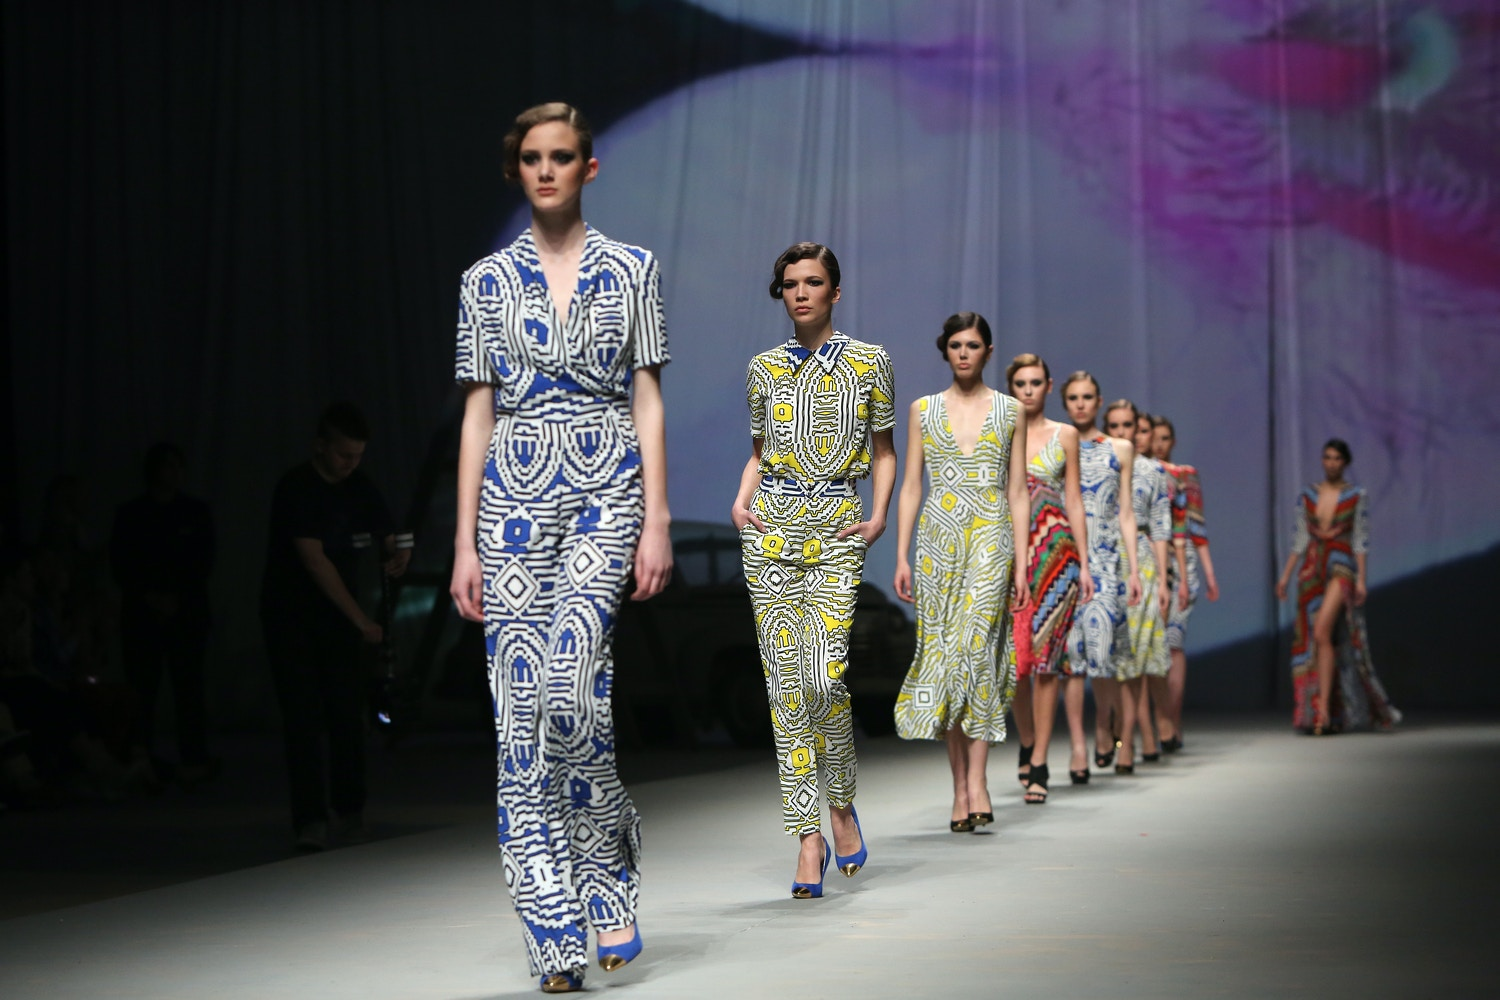 Creating your own fashion label